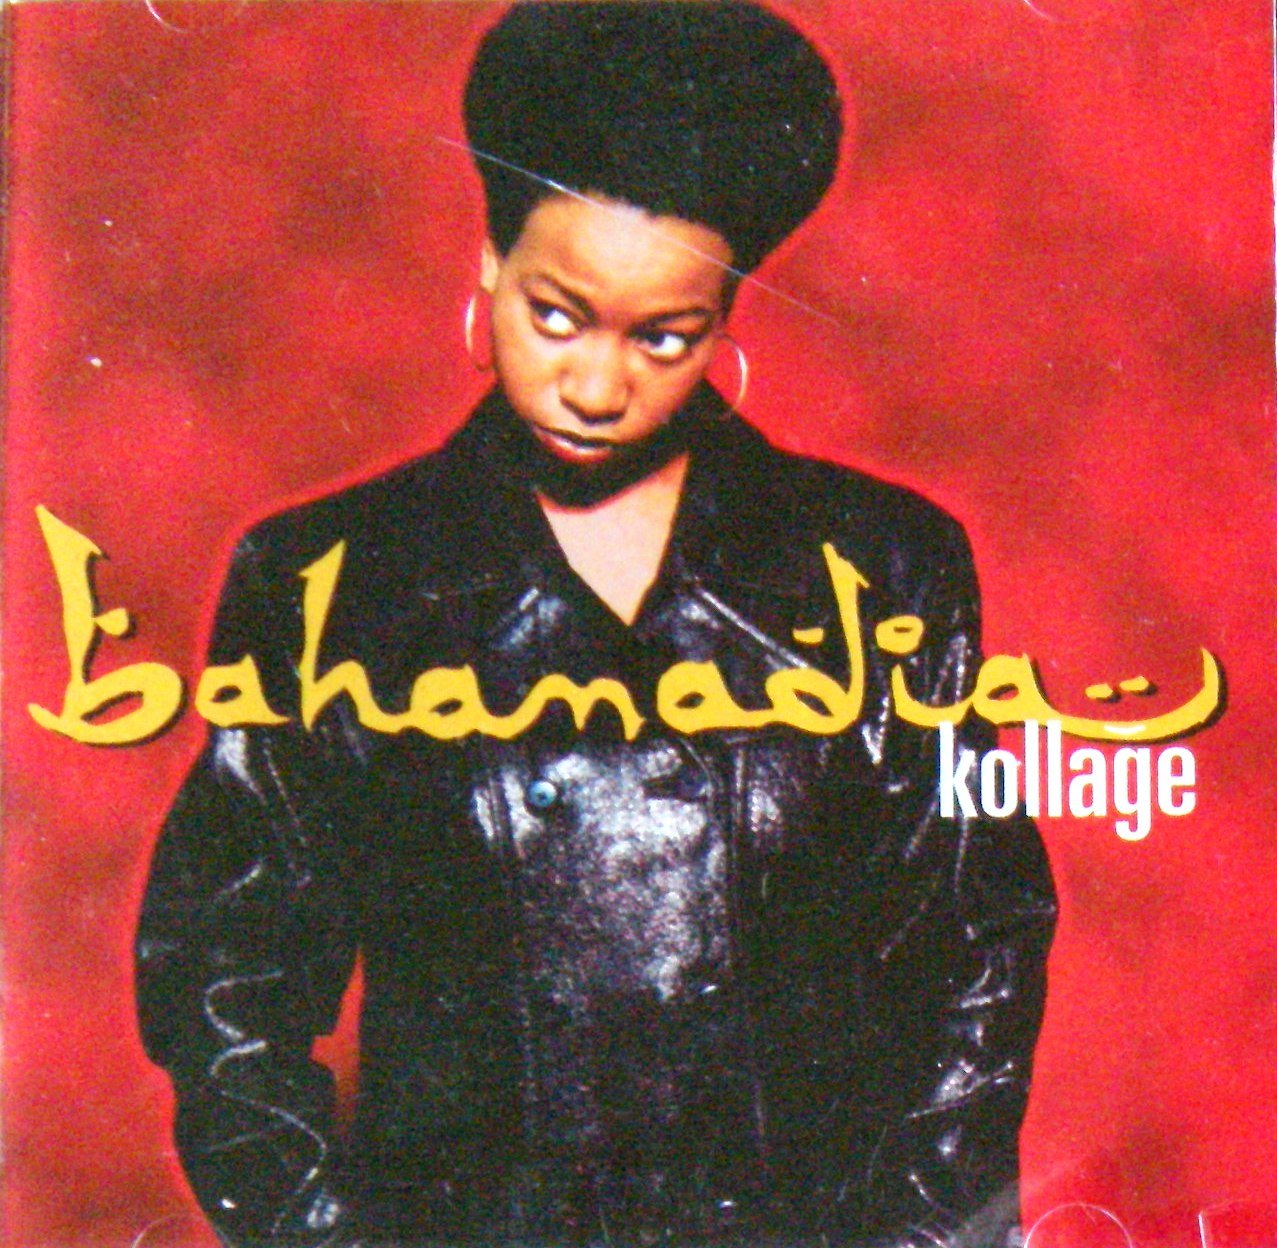 715338487c Just Announced: Bahamadia will celebrate the 20th anniversary of ...